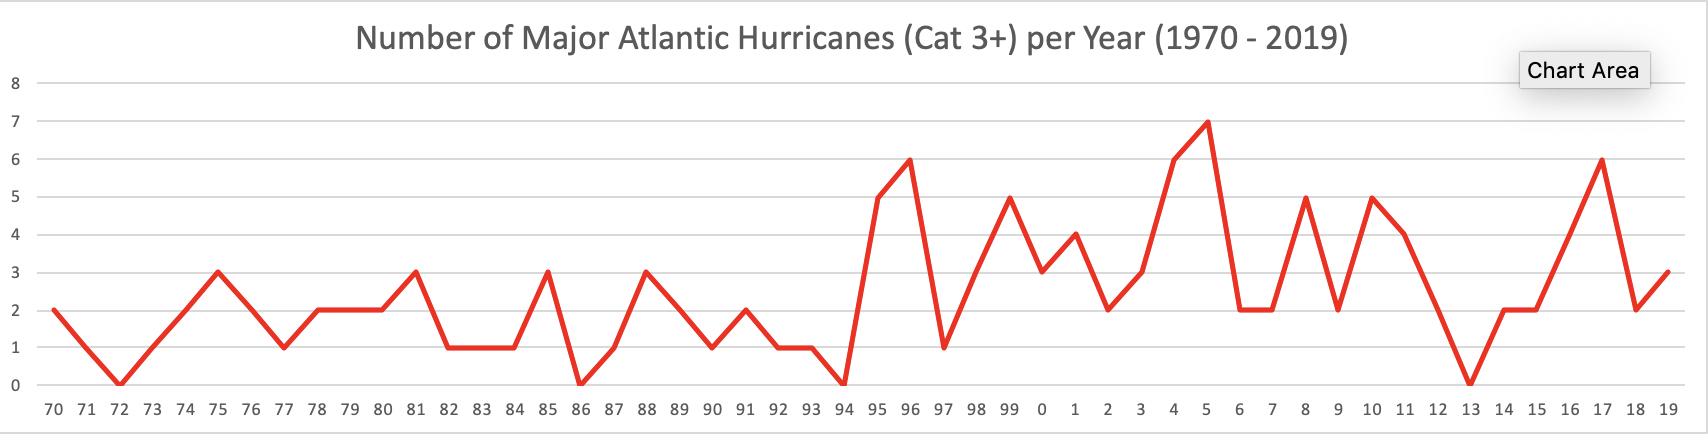 Number of Category 3+ Atlantic hurricanes per year 1970 to 2019